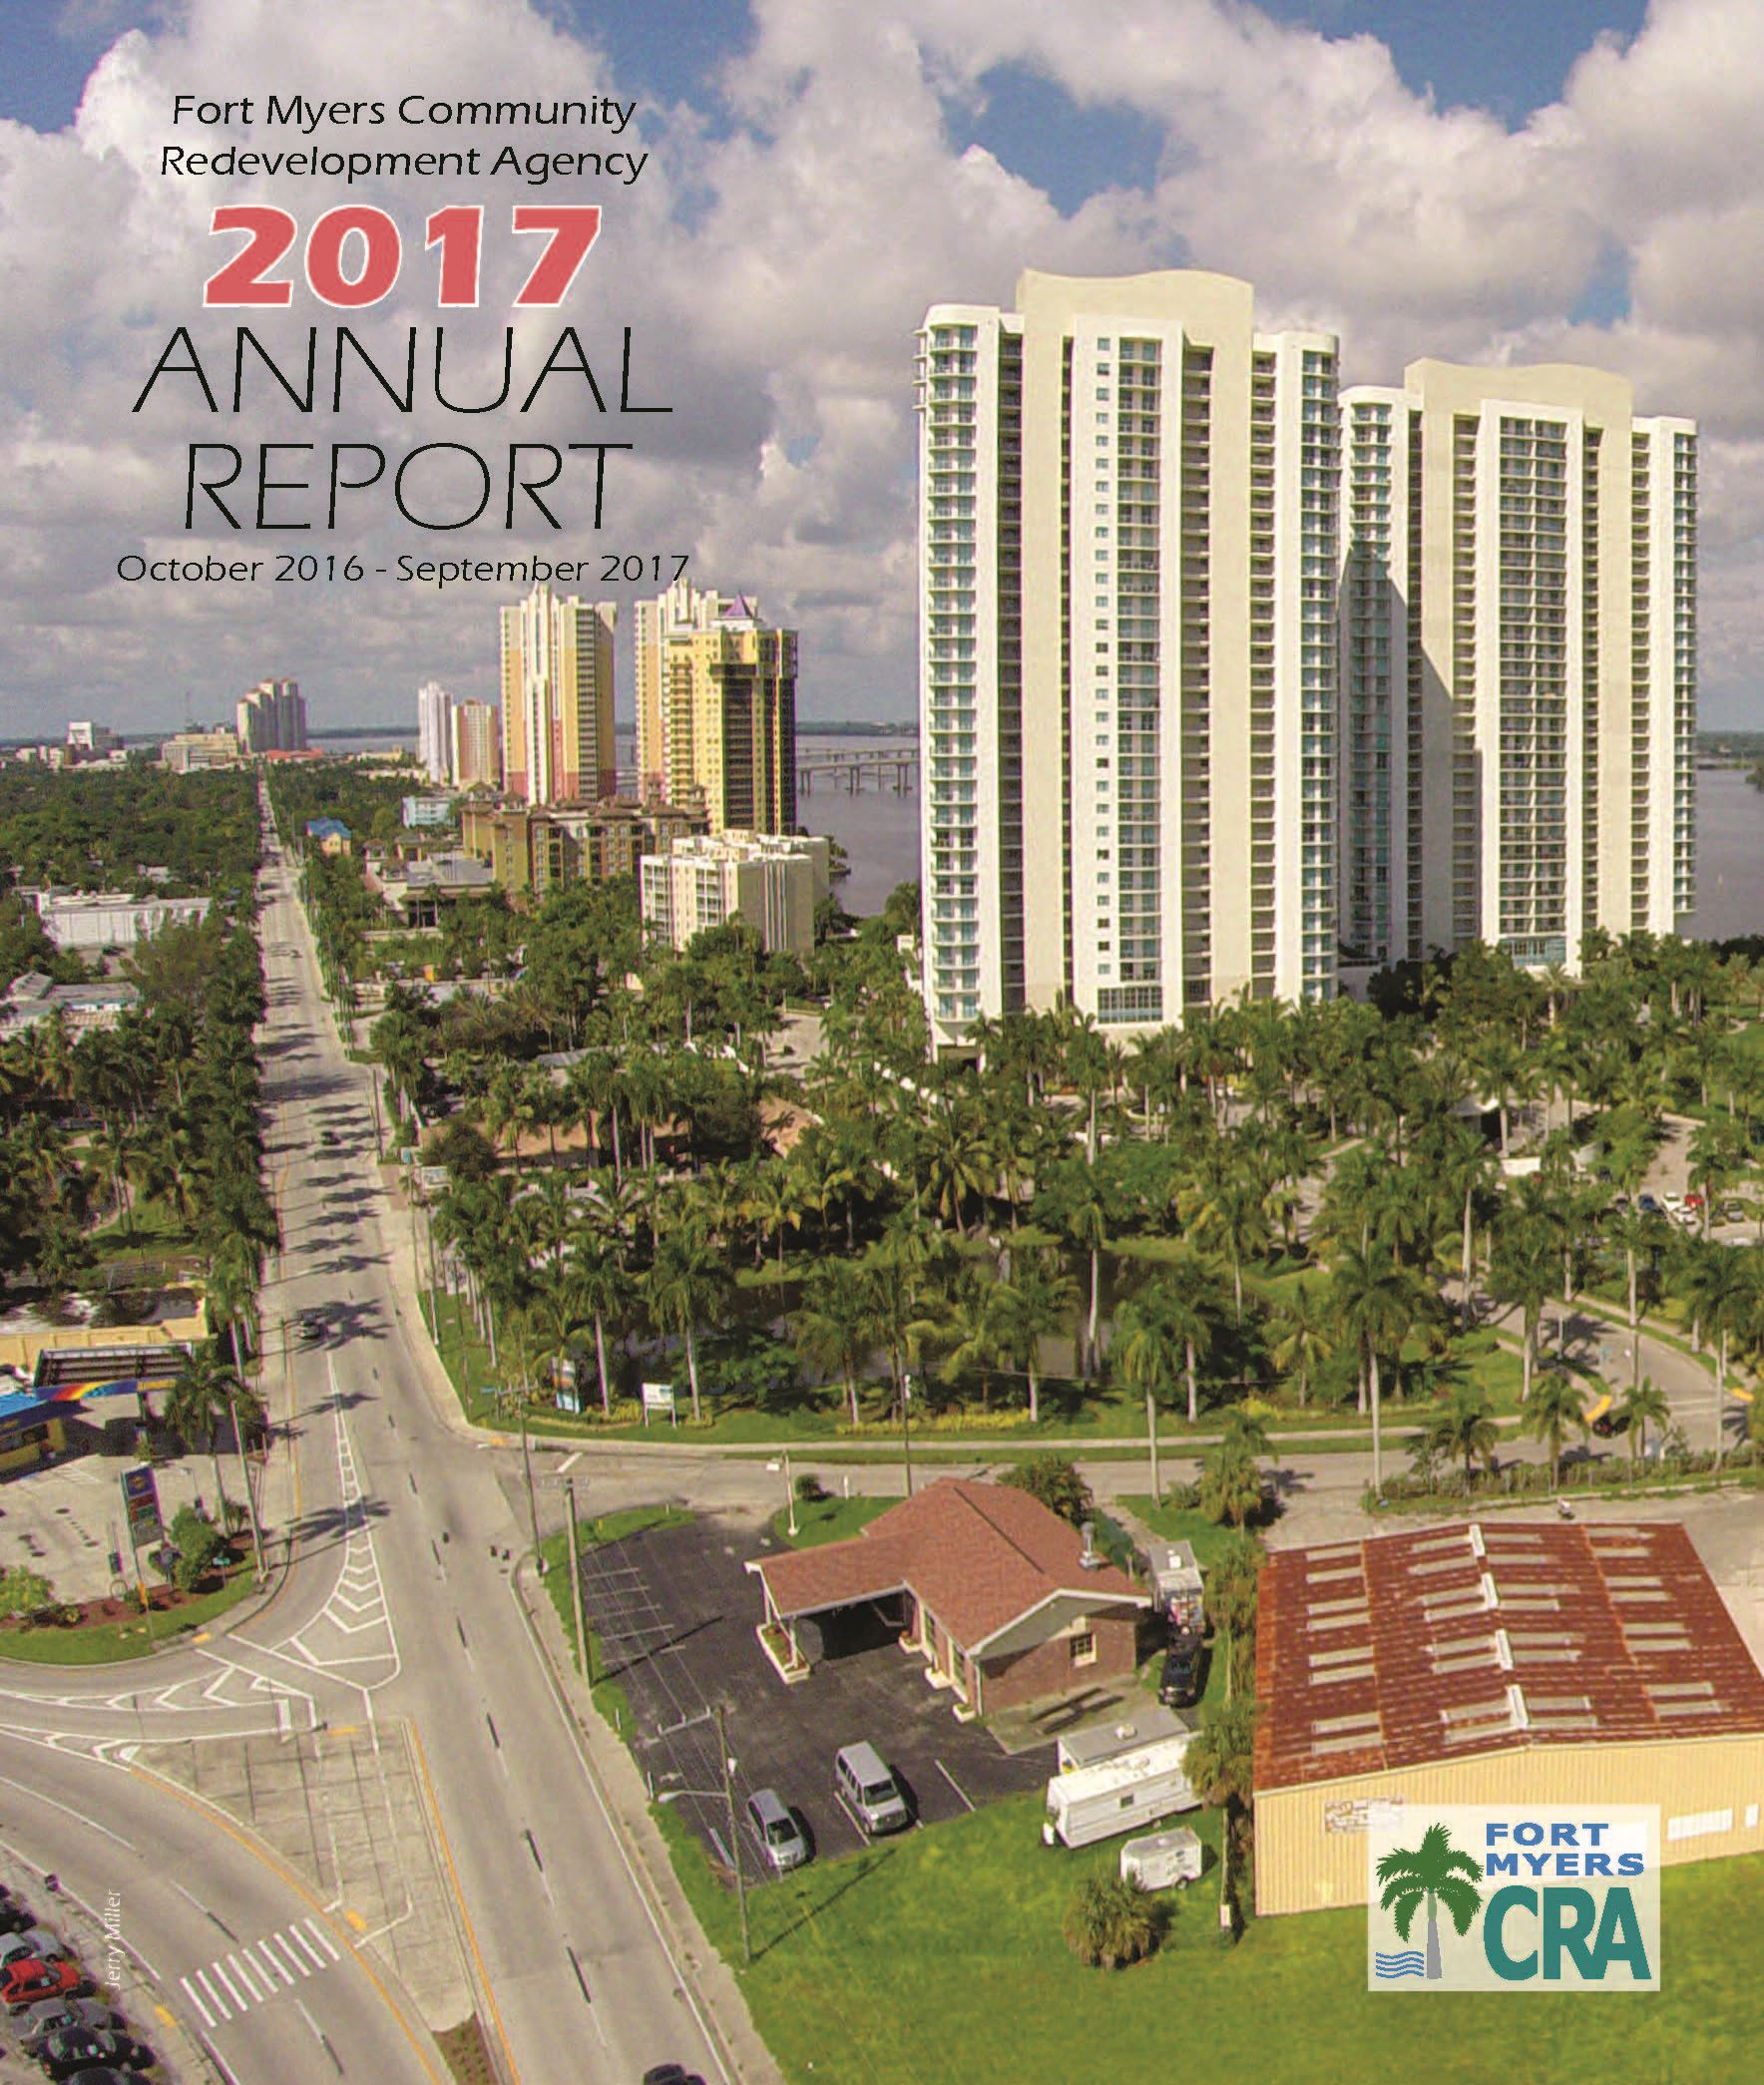 2017 CRA Annual Report Opens in new window